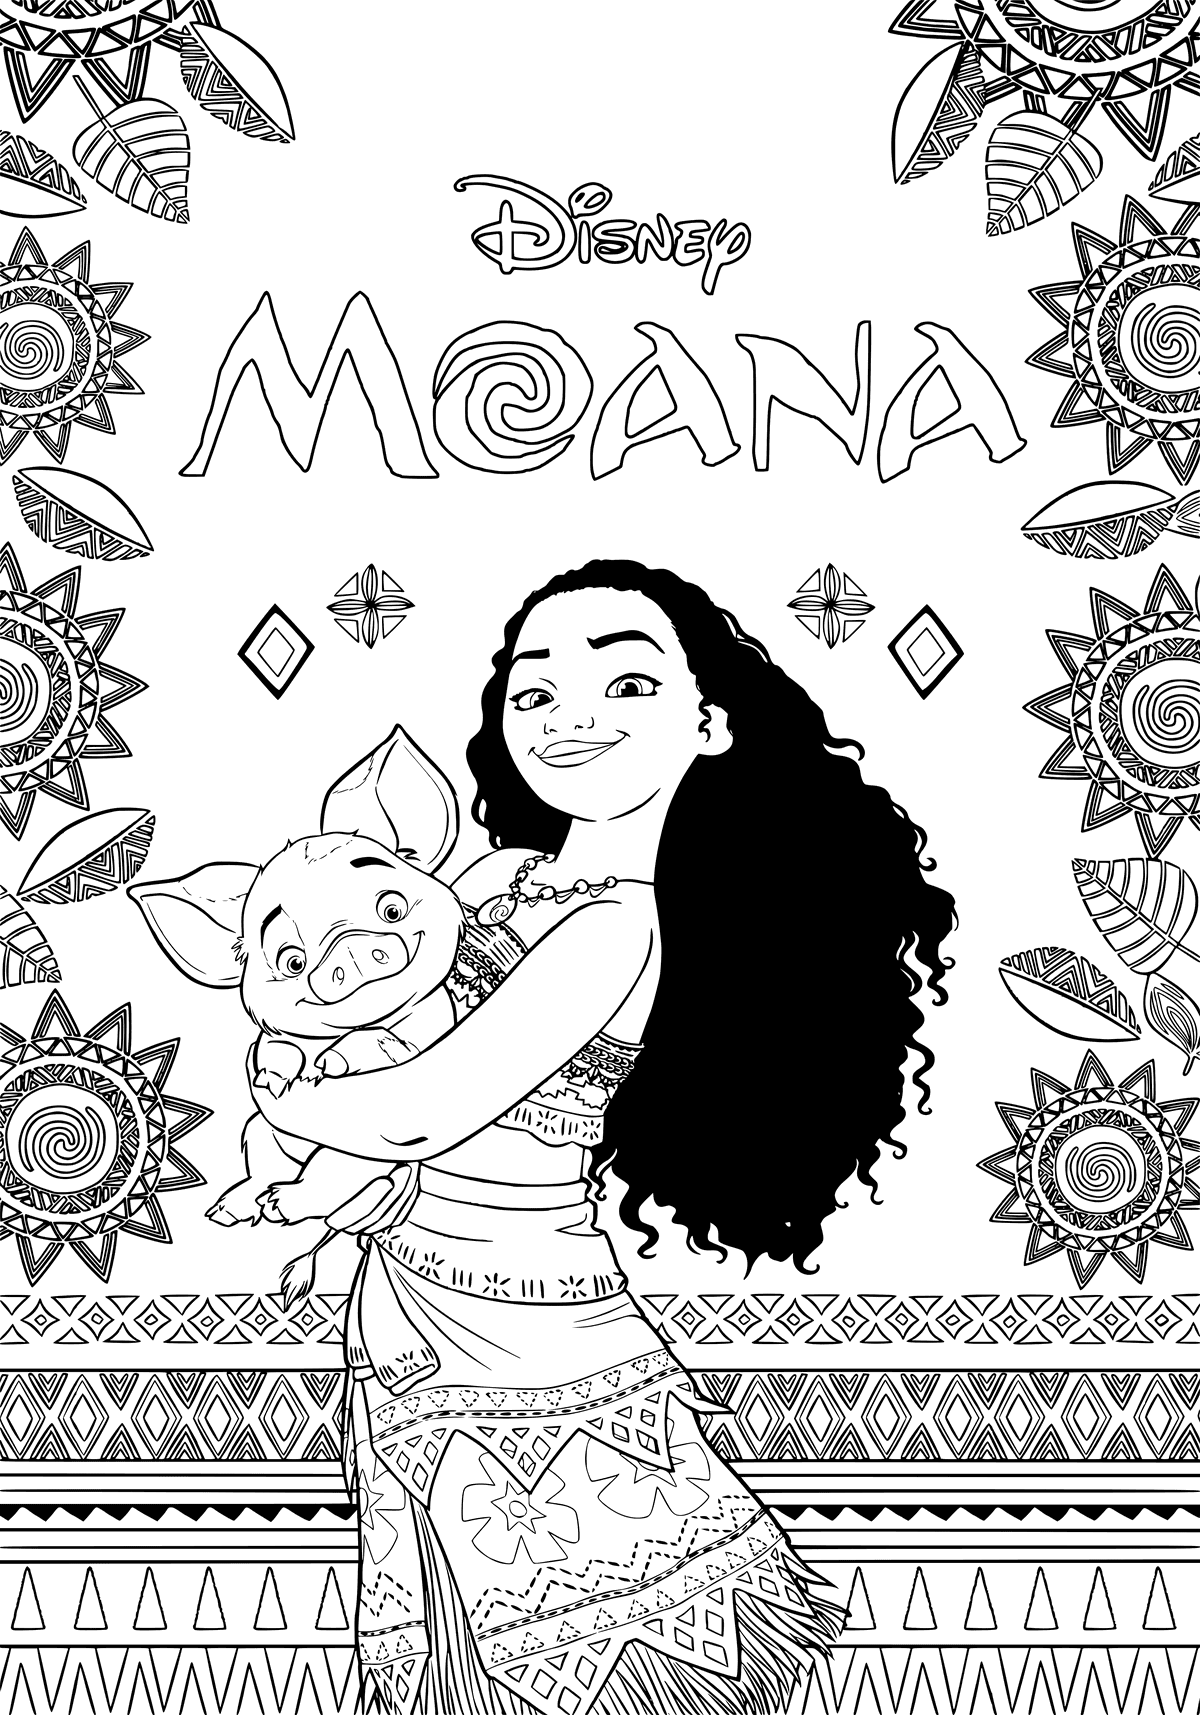 Moana Coloring Pages Best Coloring Pages For Kids Moana Coloring Pages Disney Coloring Pages Moana Coloring